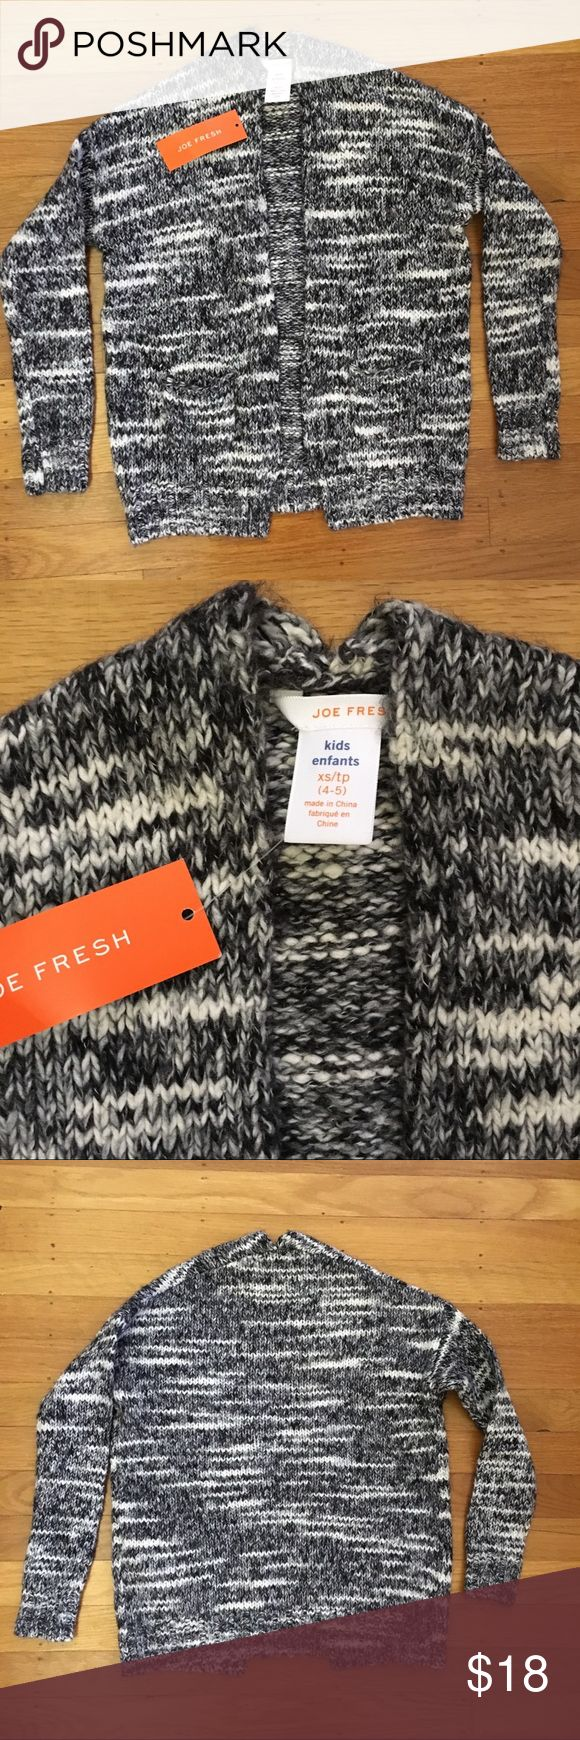 Joe Fresh Kid cardigan Black white and grey marled open front sweater with front pockets Joe Fresh Shirts & Tops Sweaters